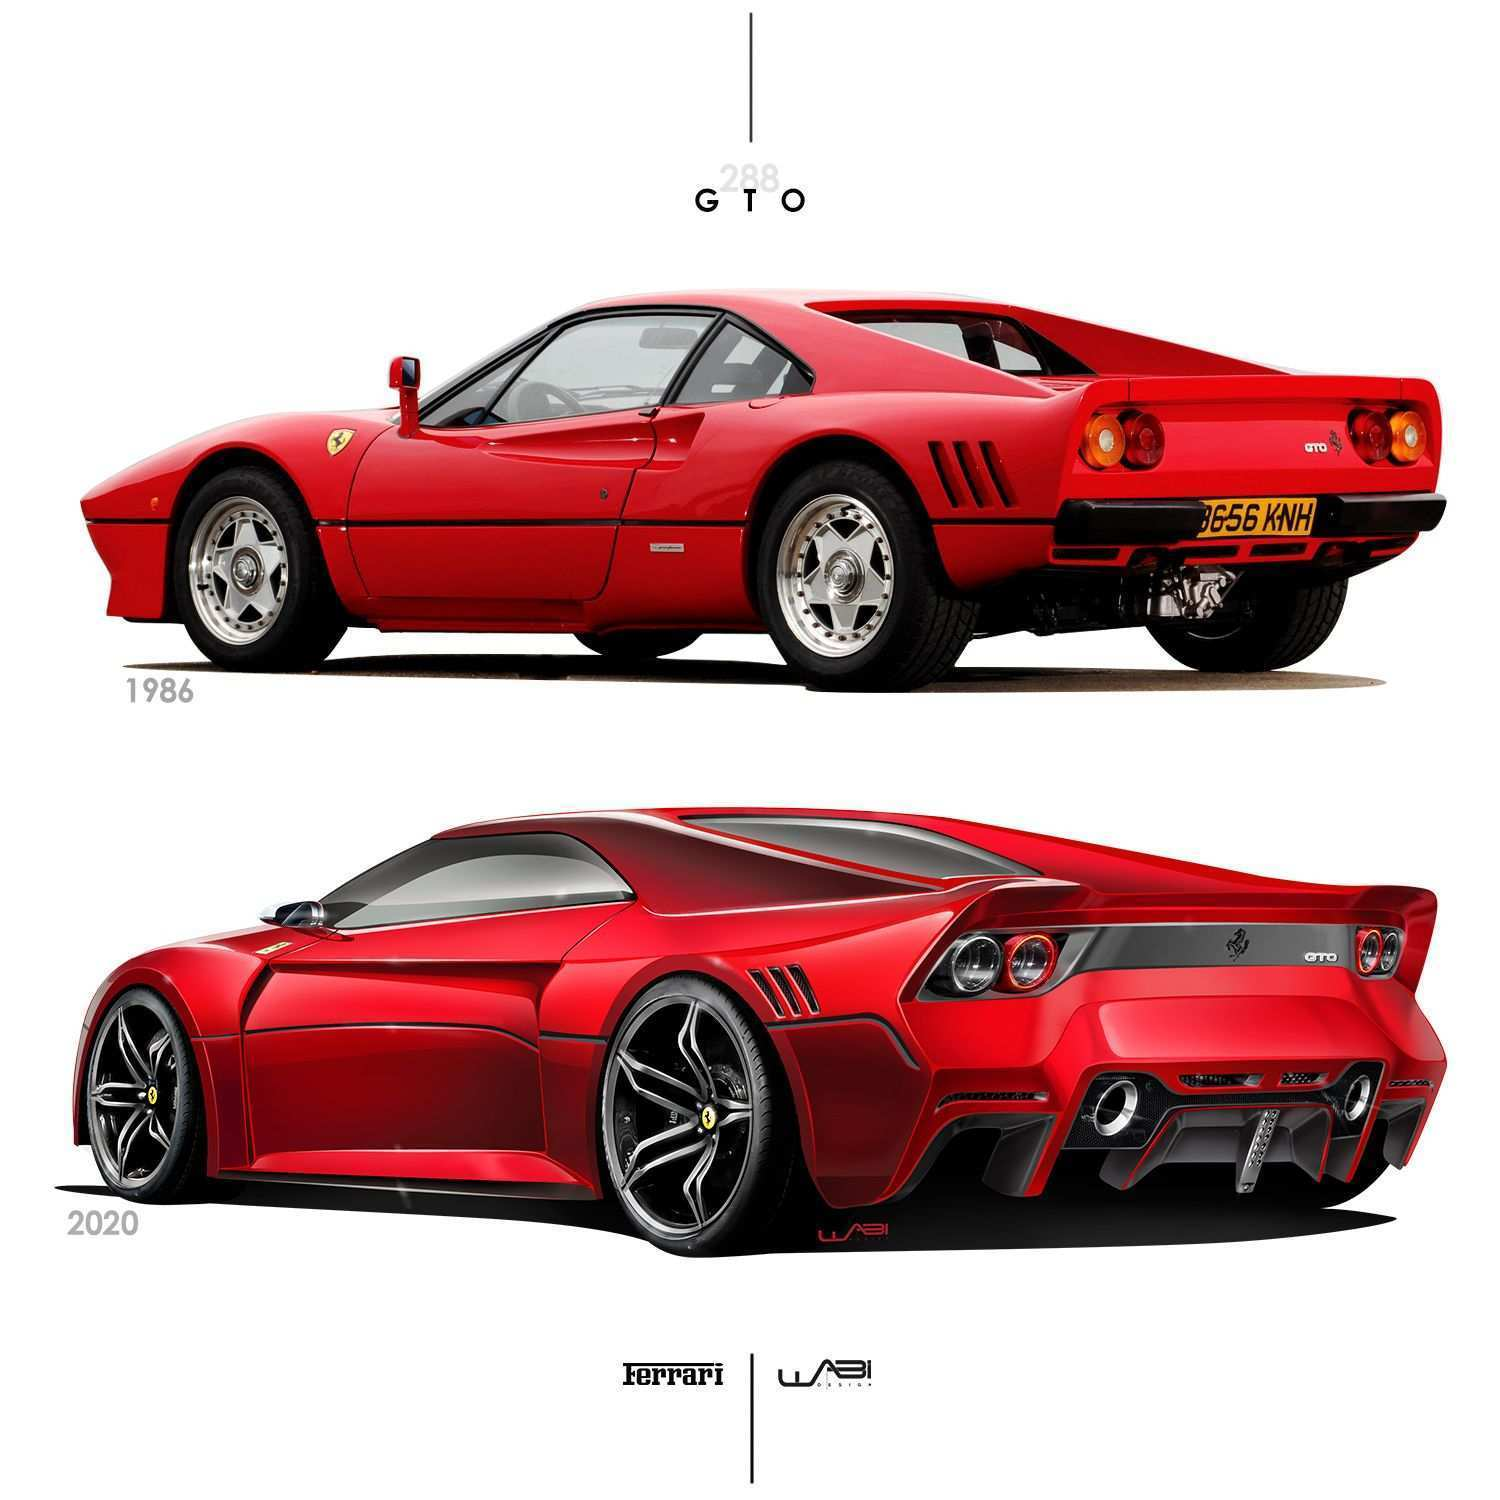 94 Great 2020 Ferrari 288 Gto Pricing for 2020 Ferrari 288 Gto